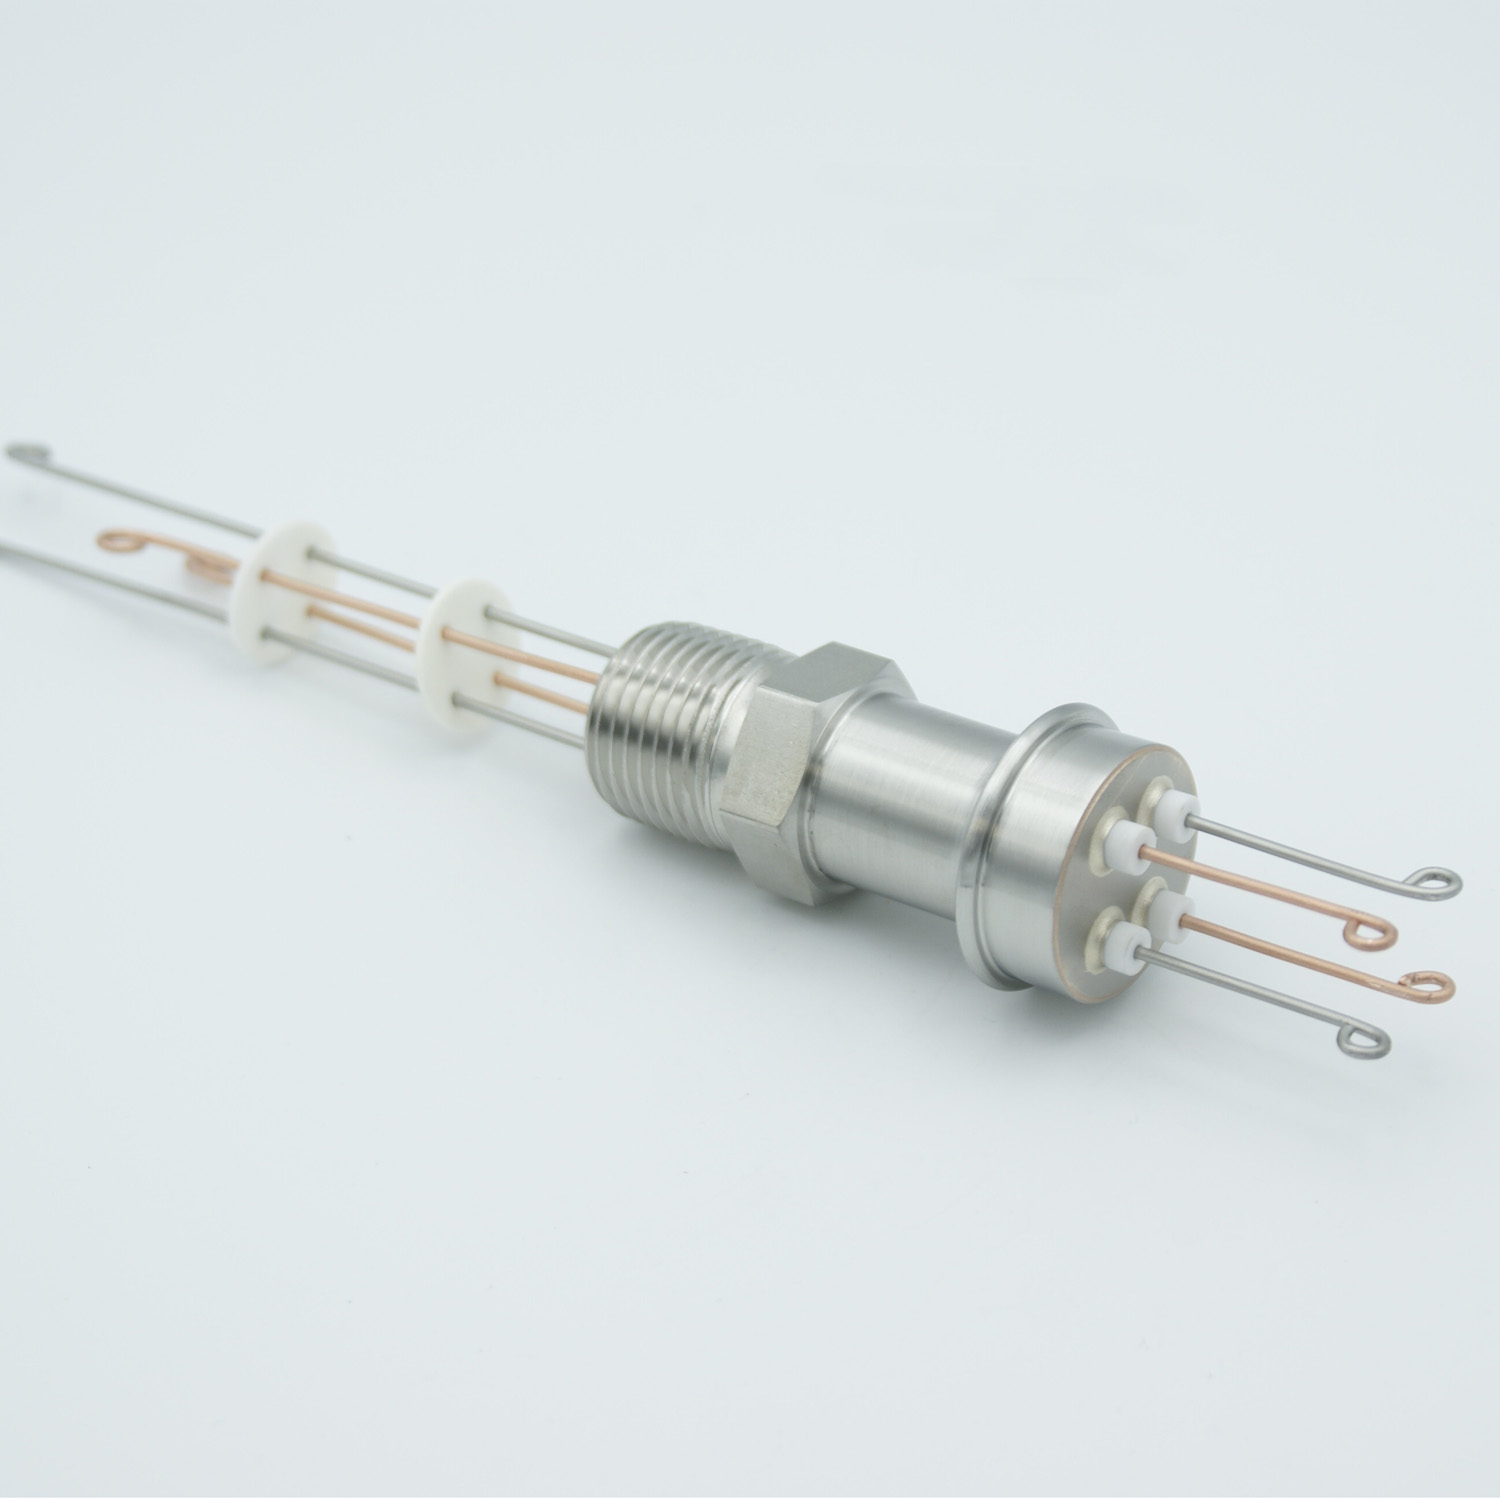 2 pair Thermocouple type-T feedthrough with both side connectors included, NPT 1/2